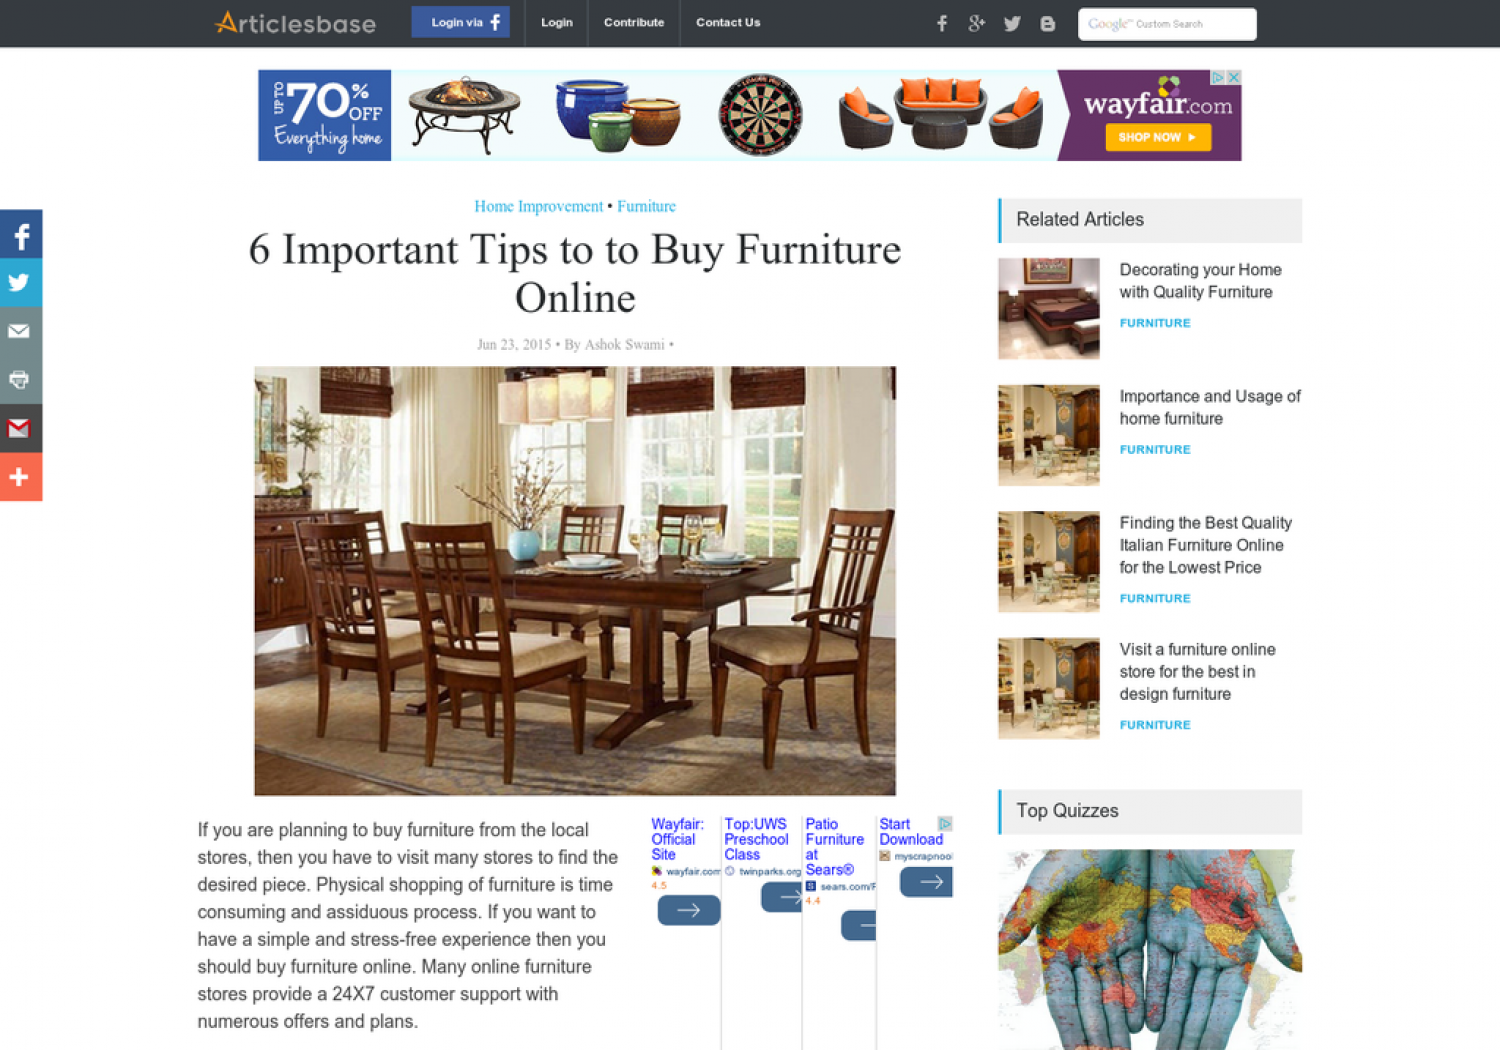 6 Important Tips To To Buy Furniture Online